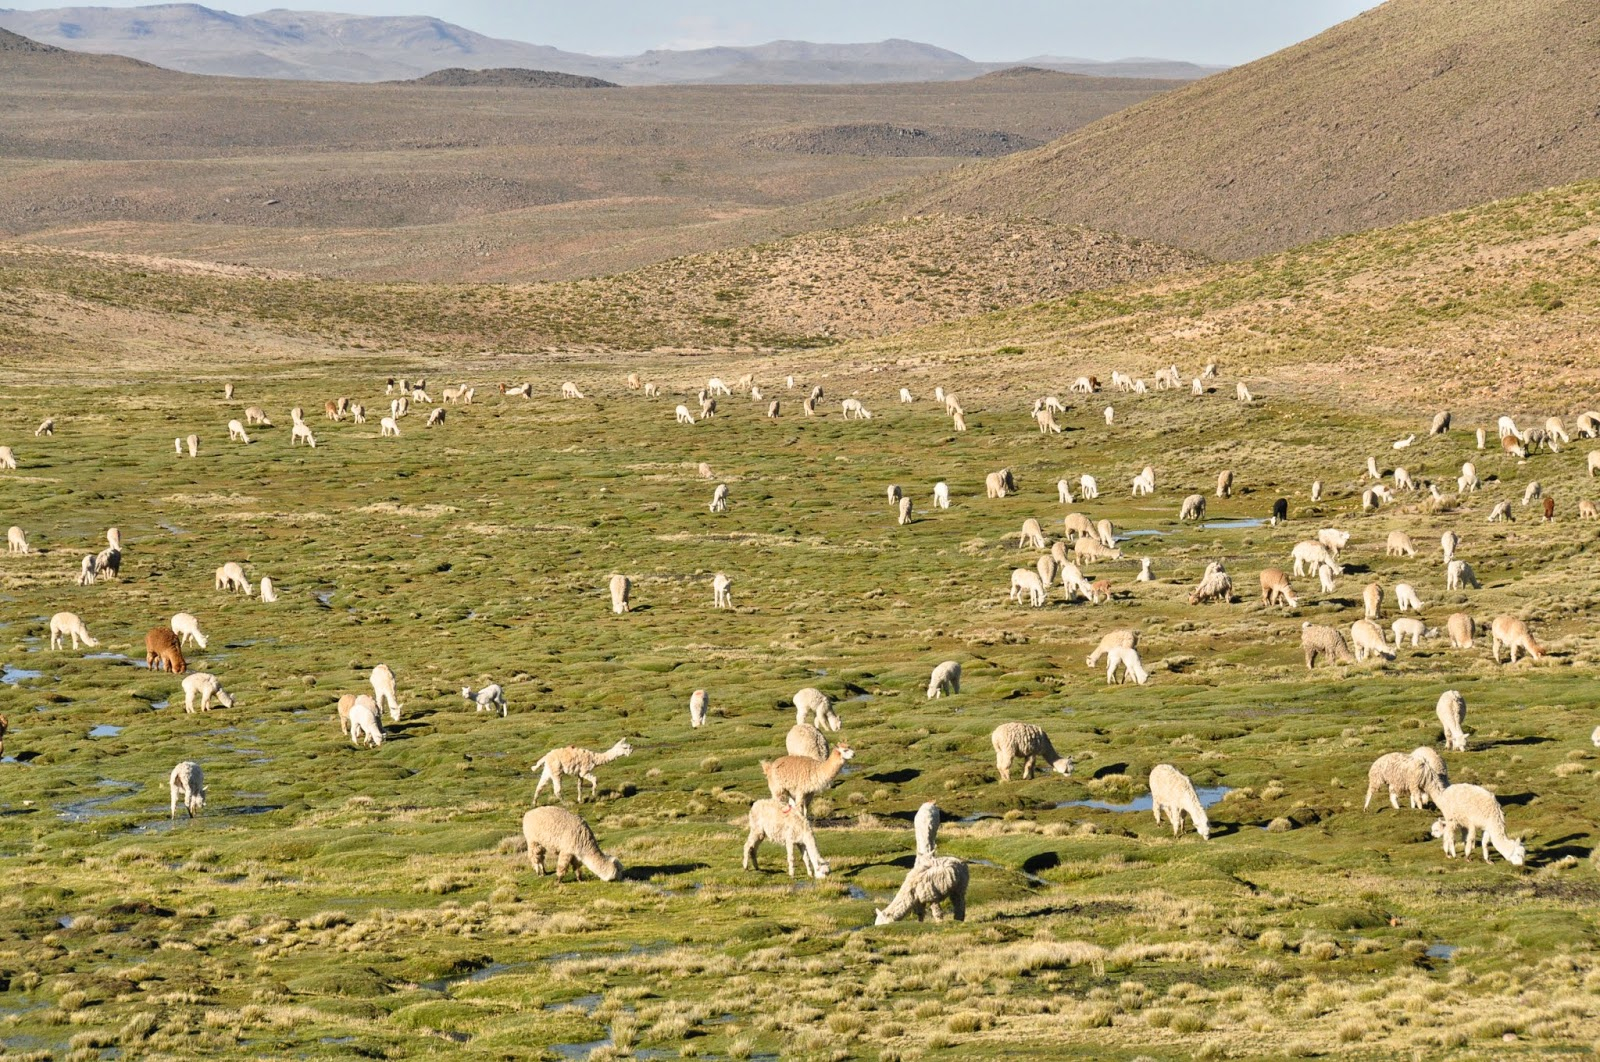 How many llamas can you spot? Correct answer: NONE! These are all alpacas!